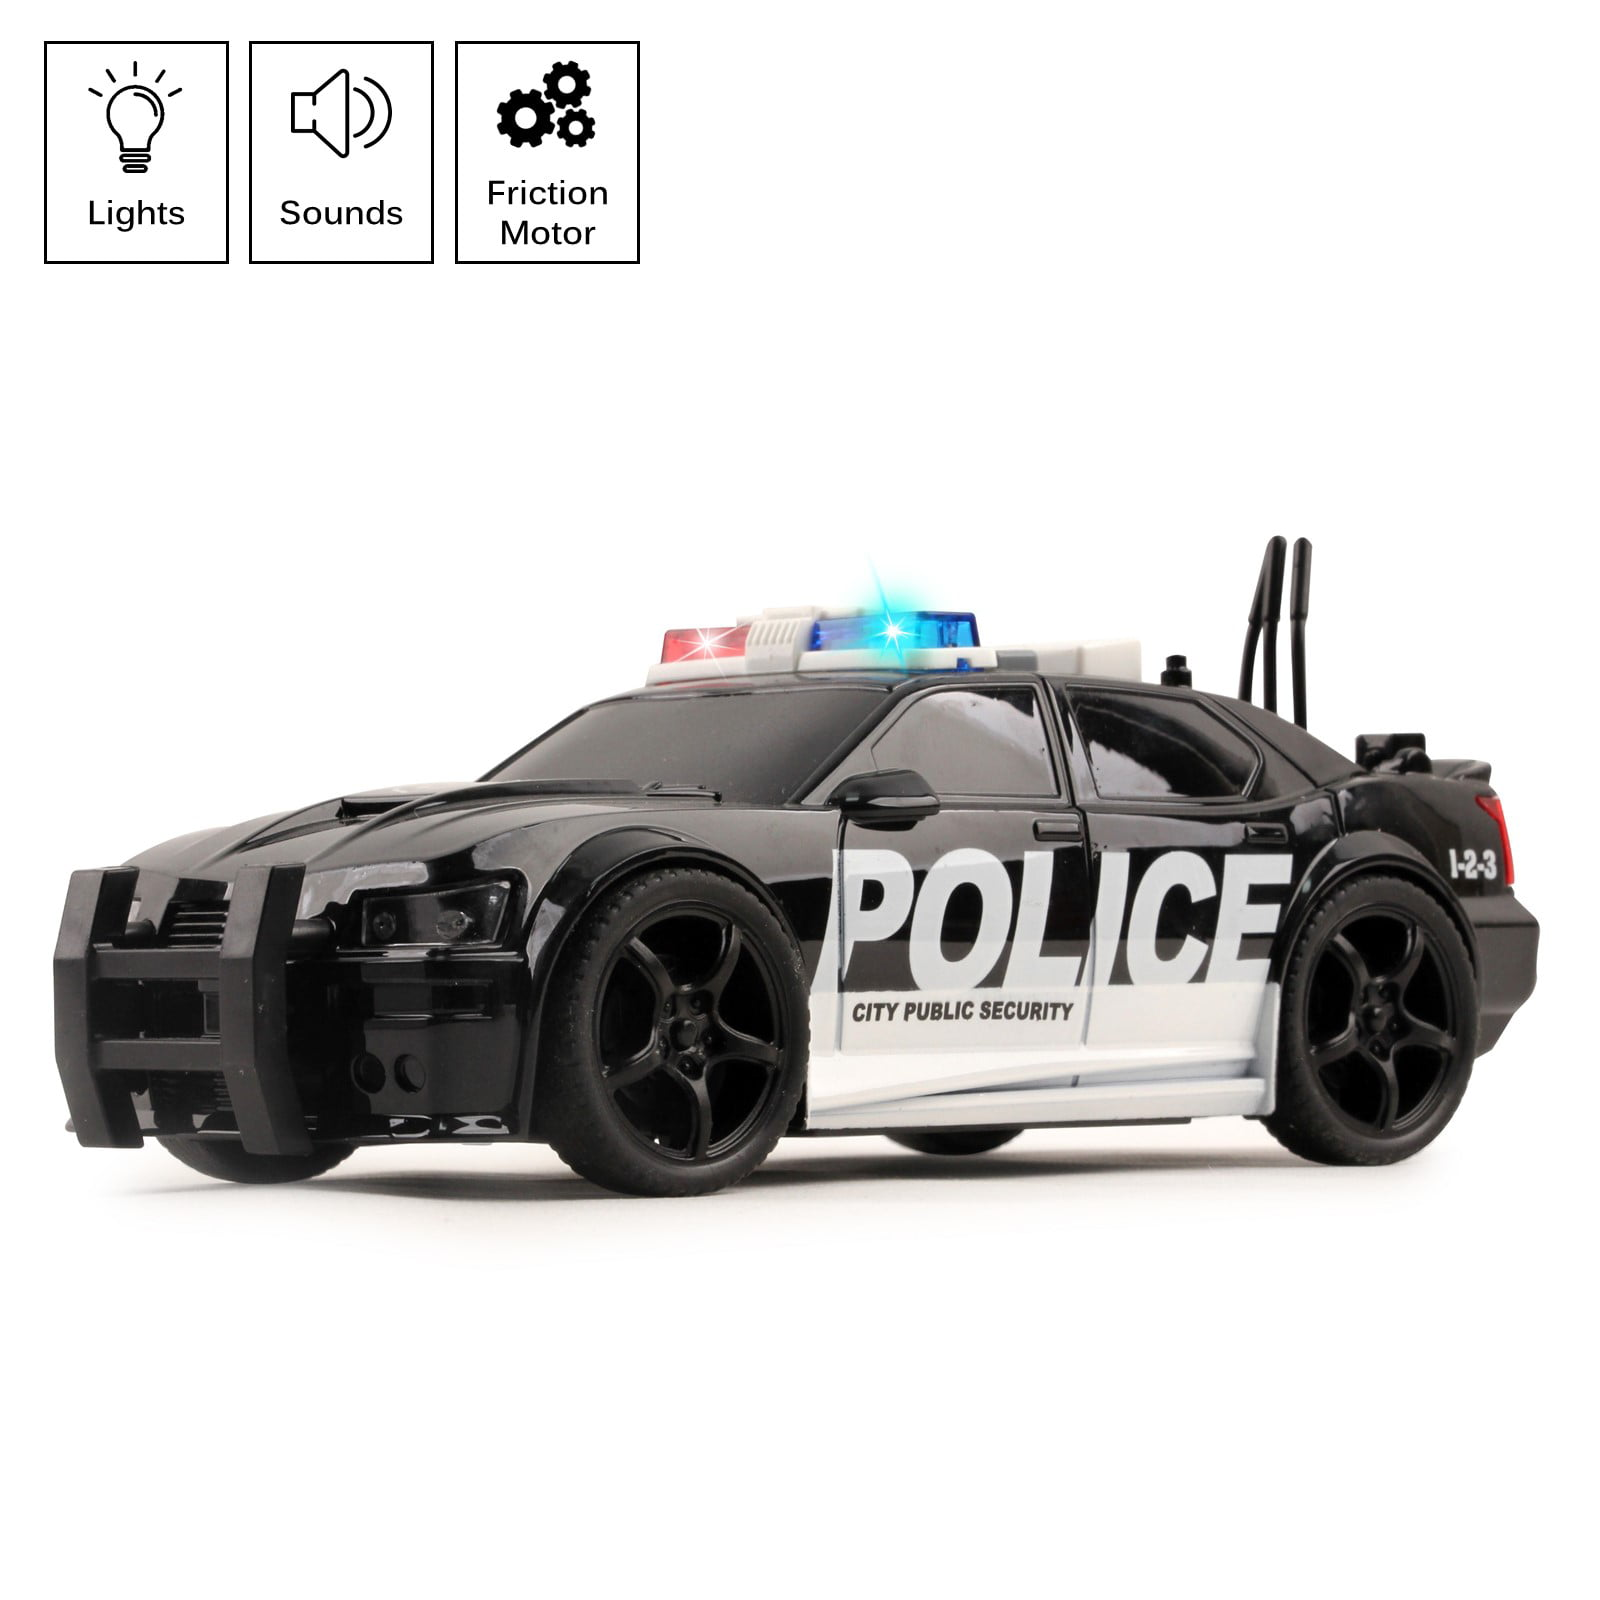 Swat Siren Roblox Id Code Vokodo Police Car Friction Powered 1 20 Scale With Lights Sirens And Sounds Durable Kids Rescue Emergency City Cop Vehicle Push And Go Pursuit Swat Toy Pretend Play Great Gift For Children Boys